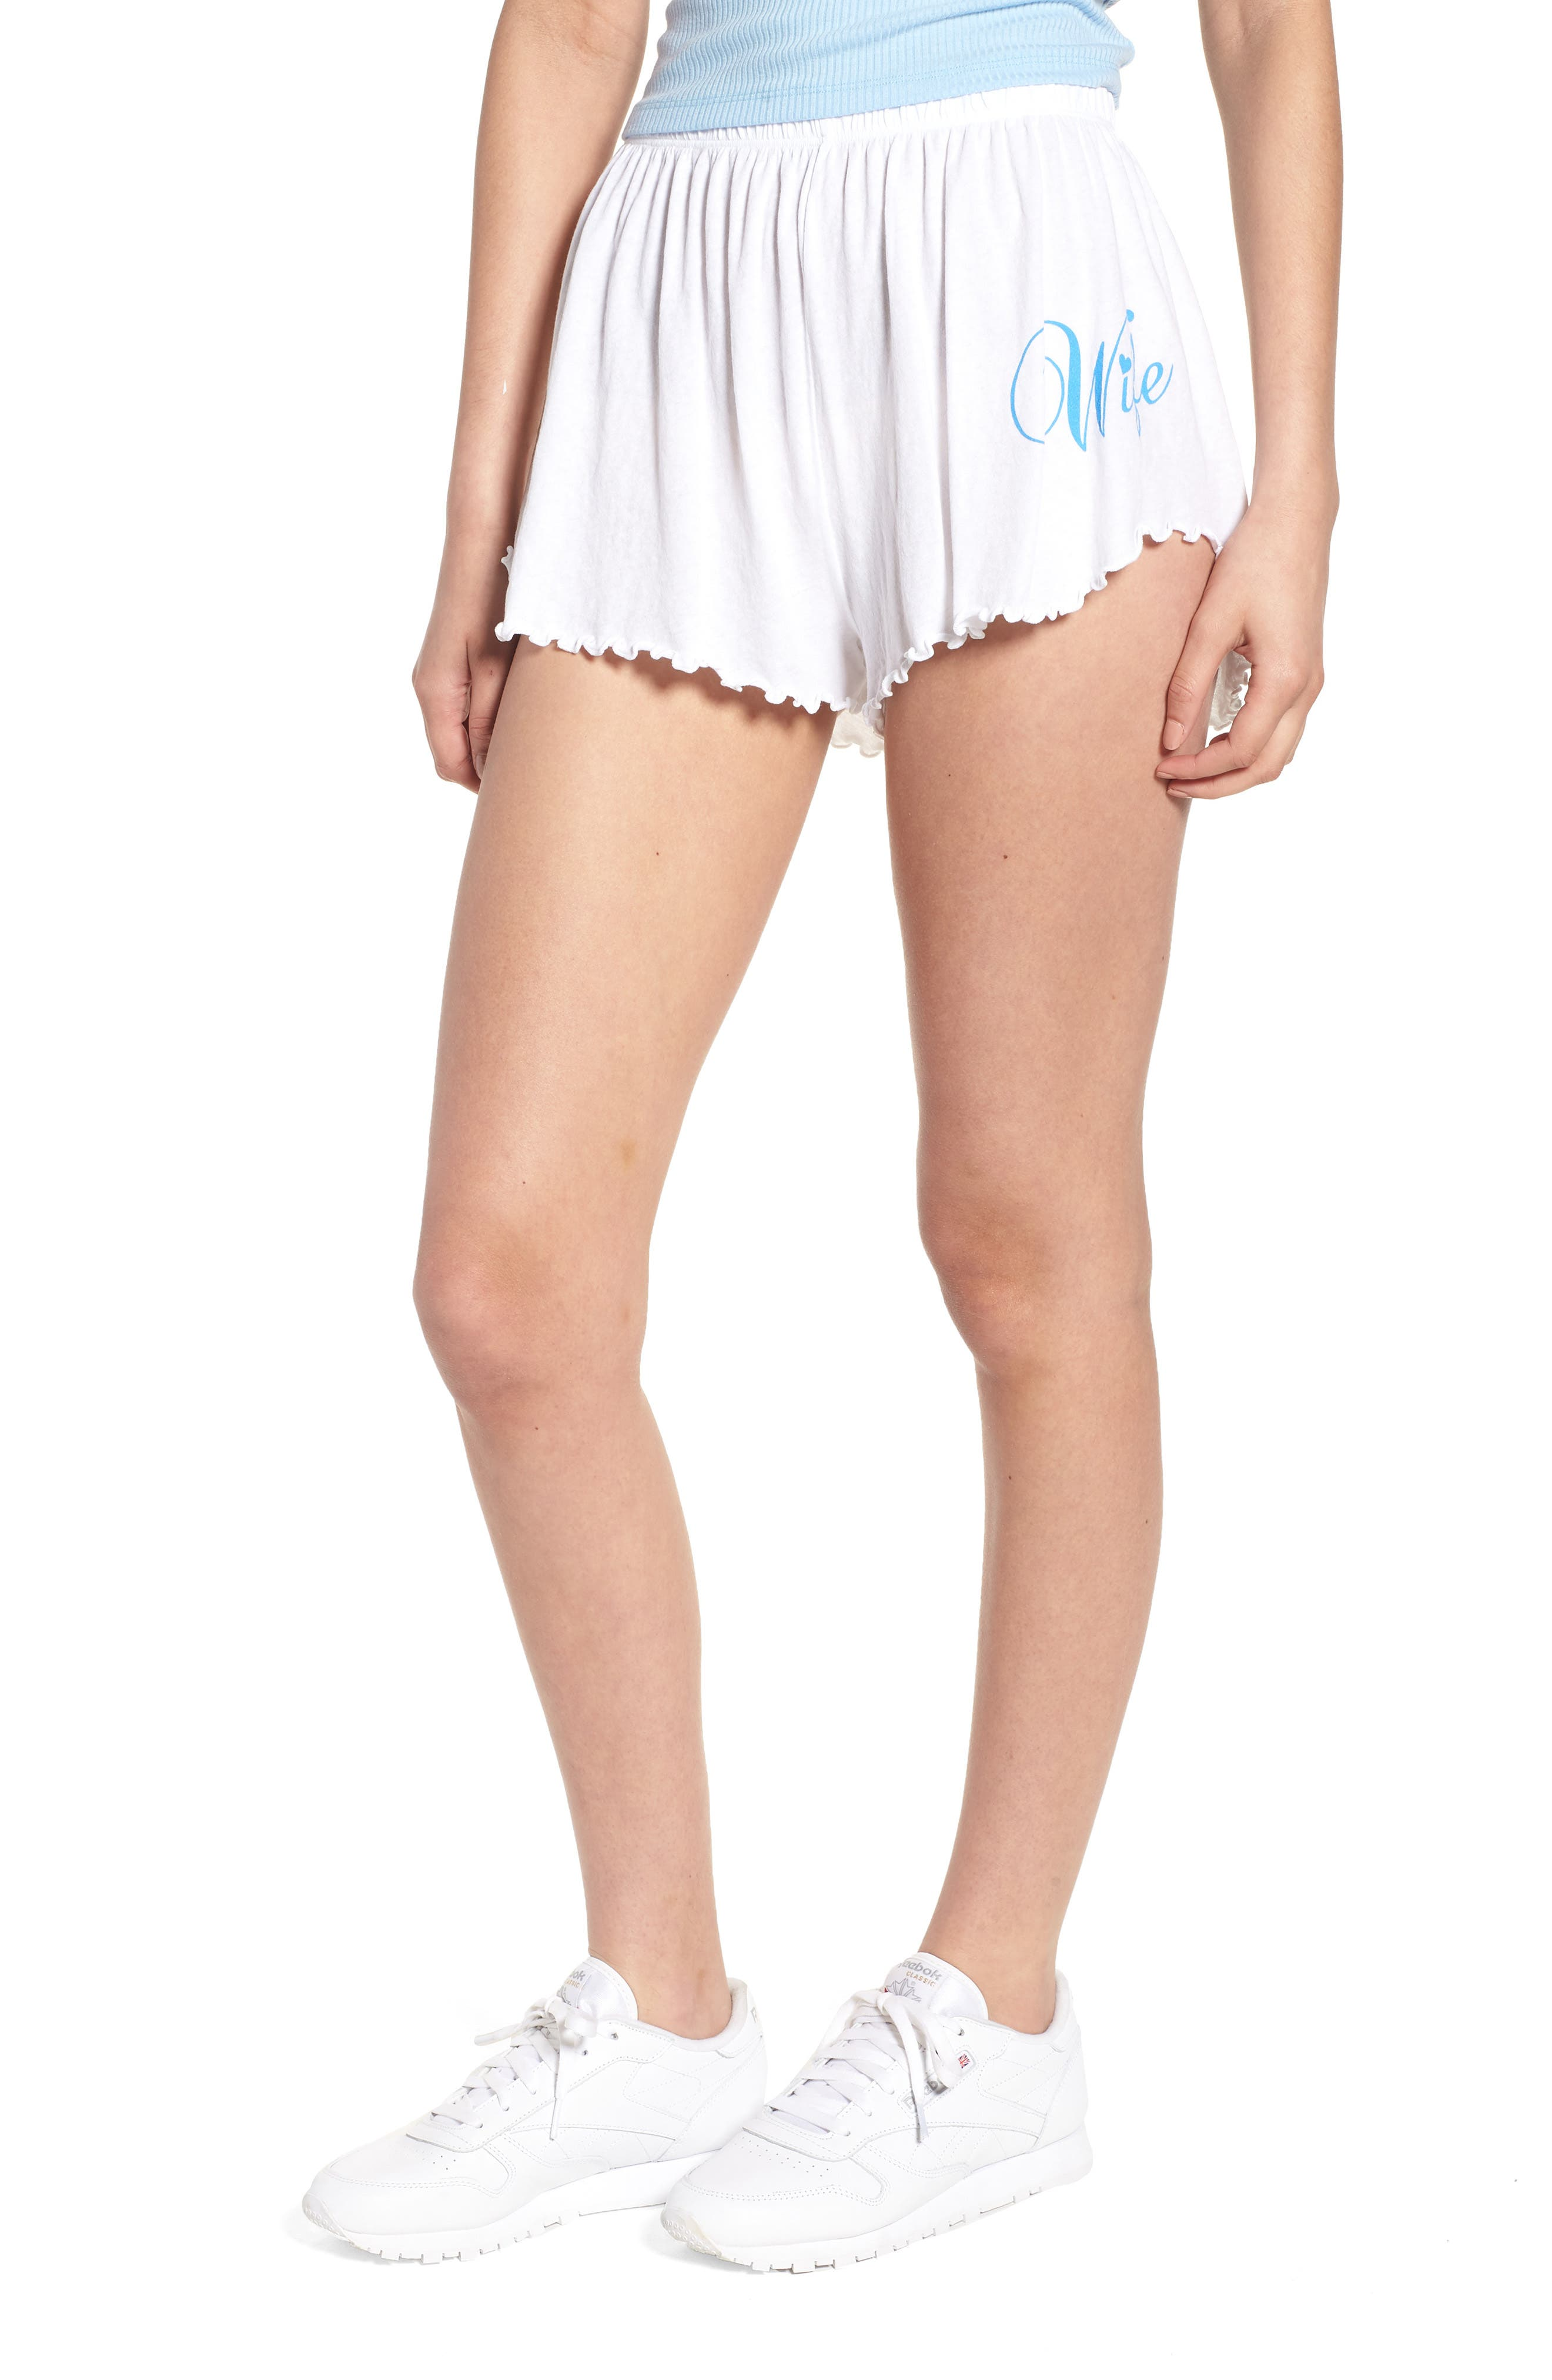 Wife Shorts,                         Main,                         color, 100